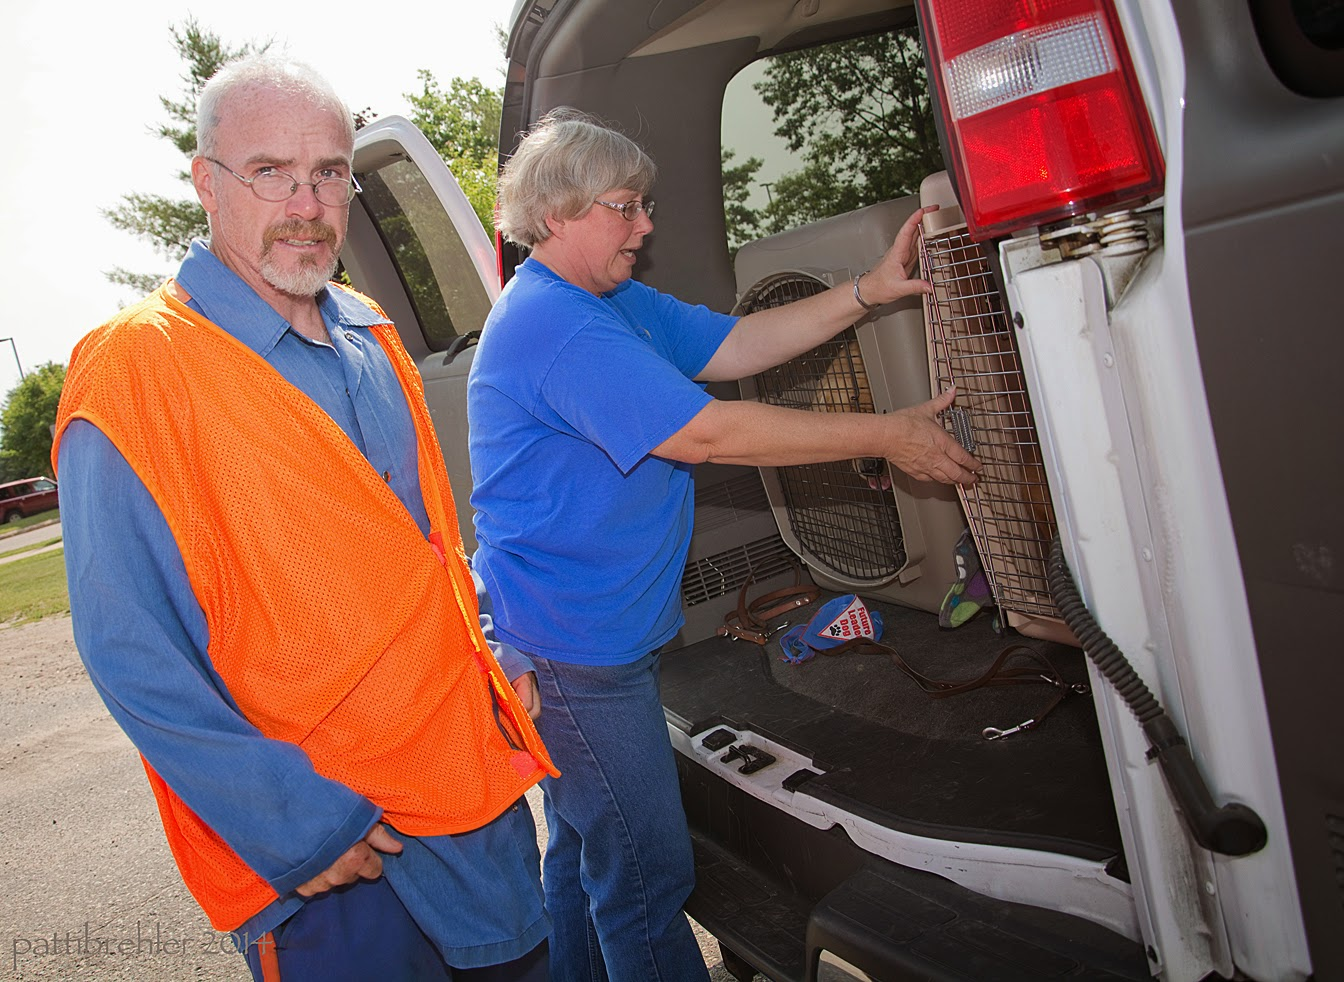 The man in the blue shirt and orange vest is turning away from the van and looking at the camera with a sad face. A woman wearing blue jeans and a blue t-shirt is closing the door of the airline crate.